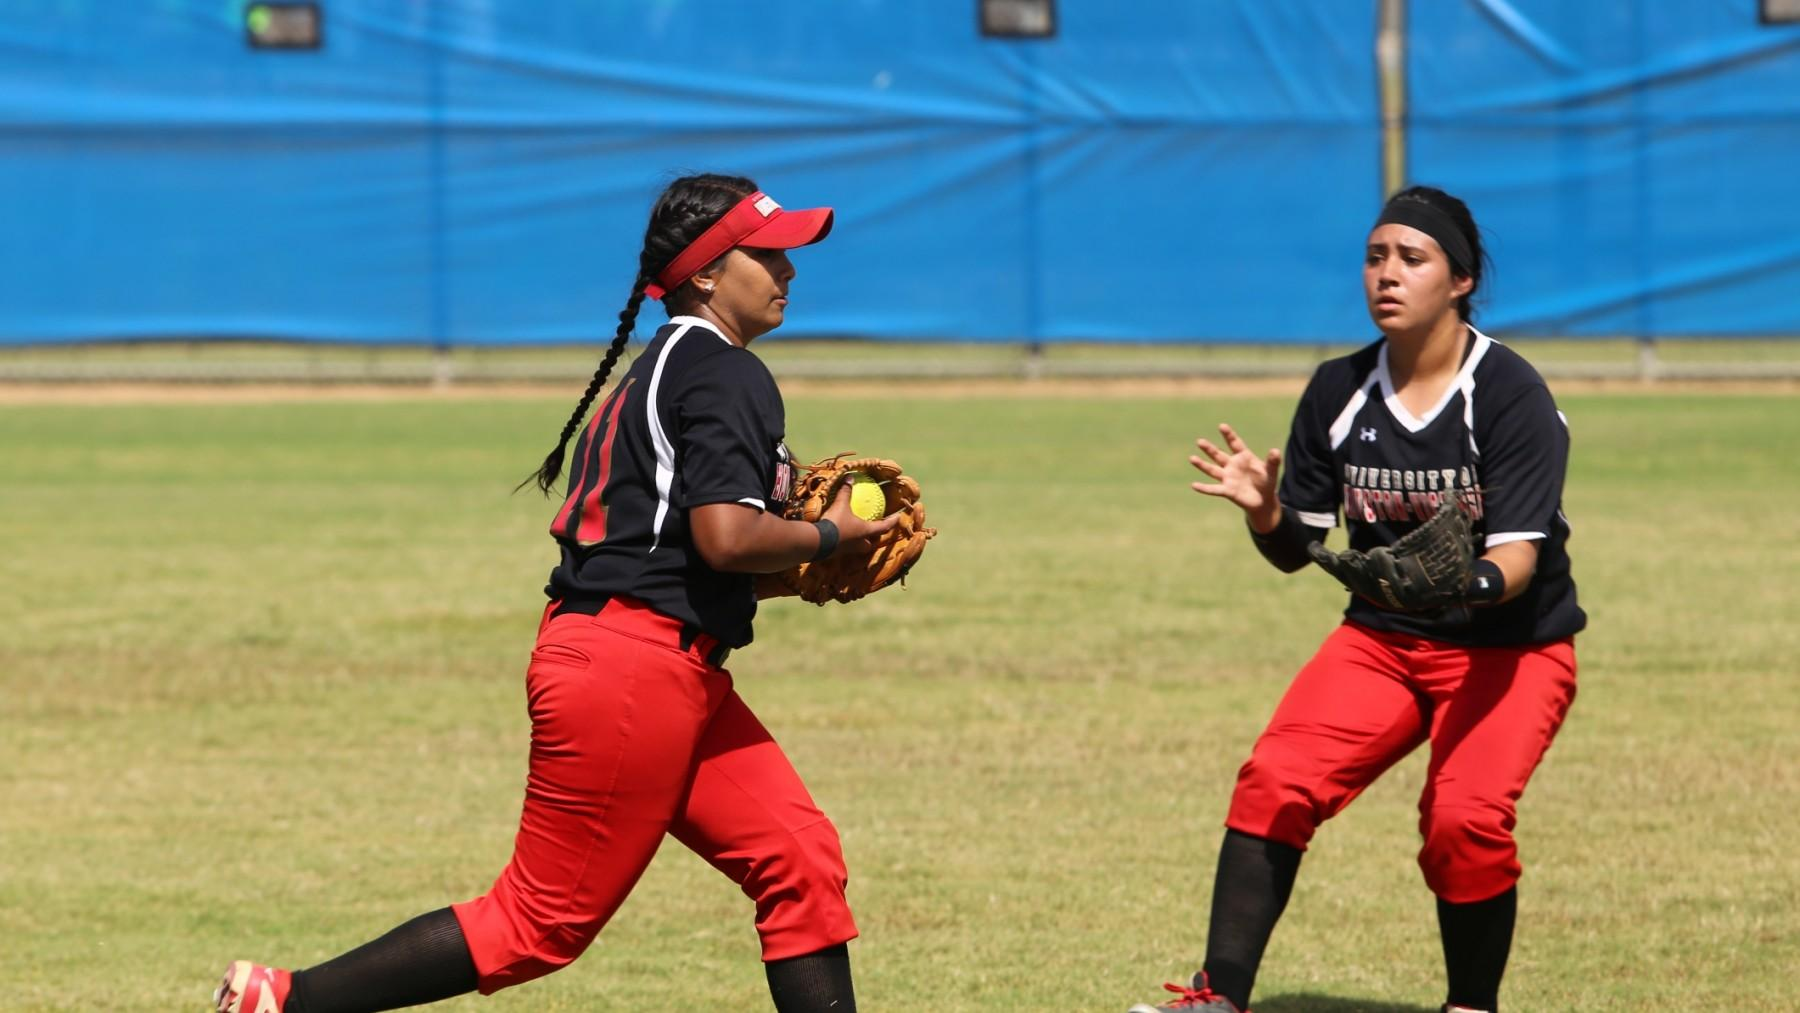 The UHV Jaguars dropped a pair of games to the LSUA Generals on Saturday.